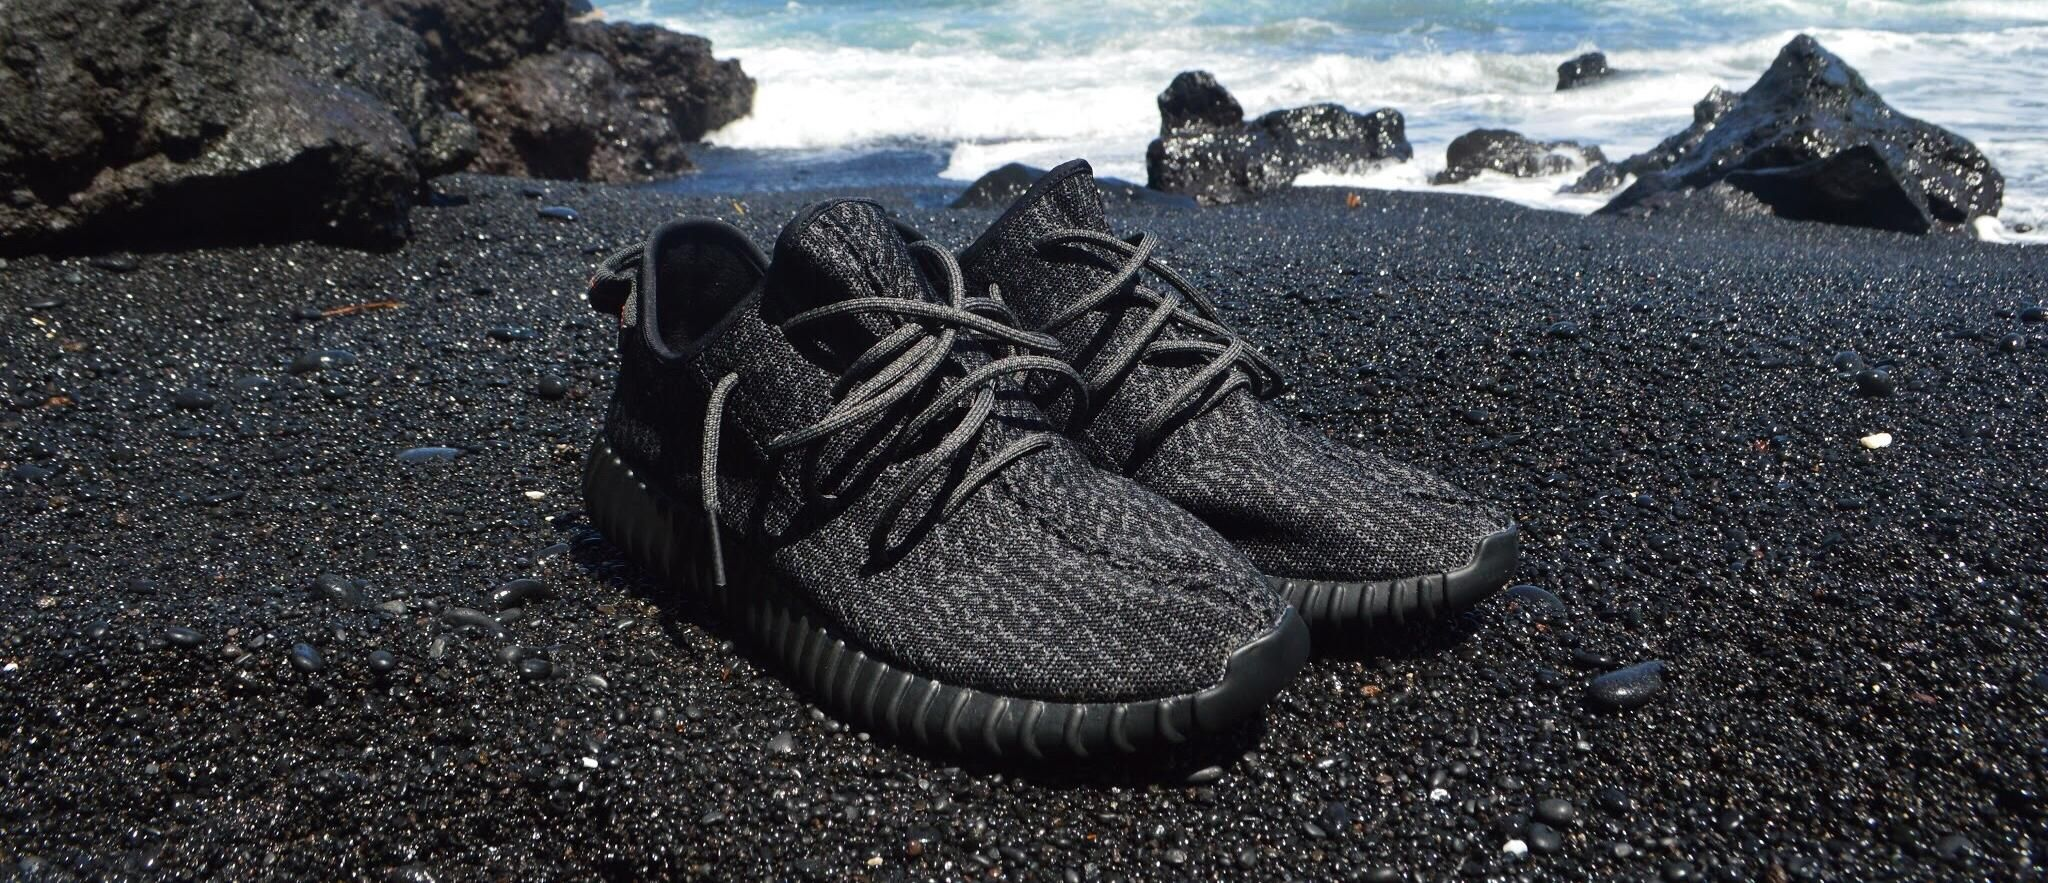 Yeezy 350 Boost Pirate Black [2048 x 883]. wallpaper